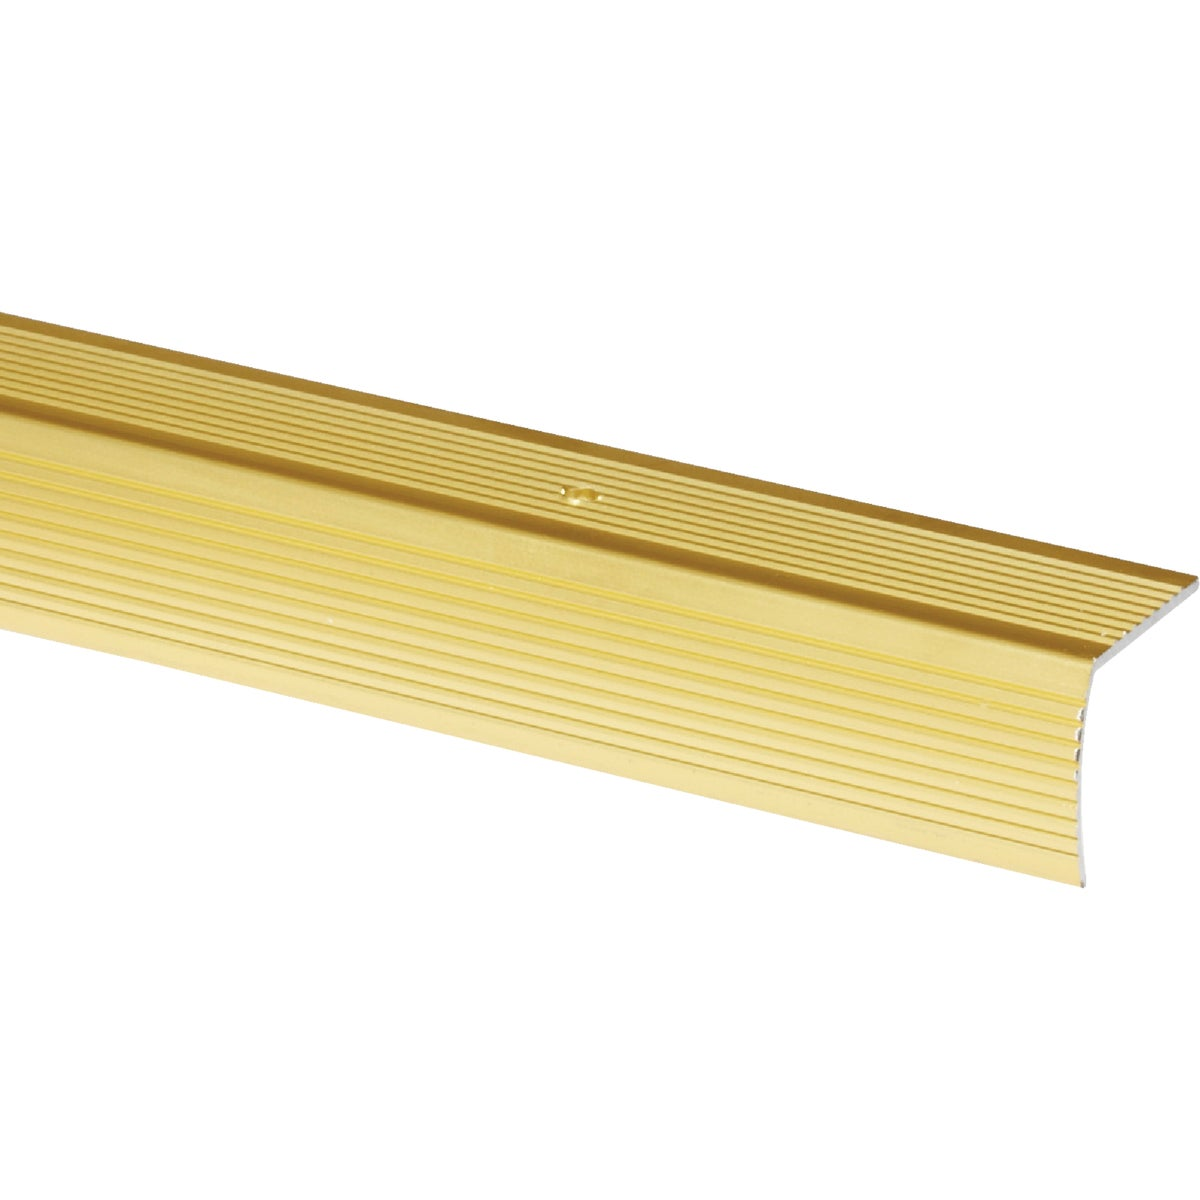 "1-1/8""X3' GOLD EDGING - H4128FB3DI by Thermwell Prods Co"